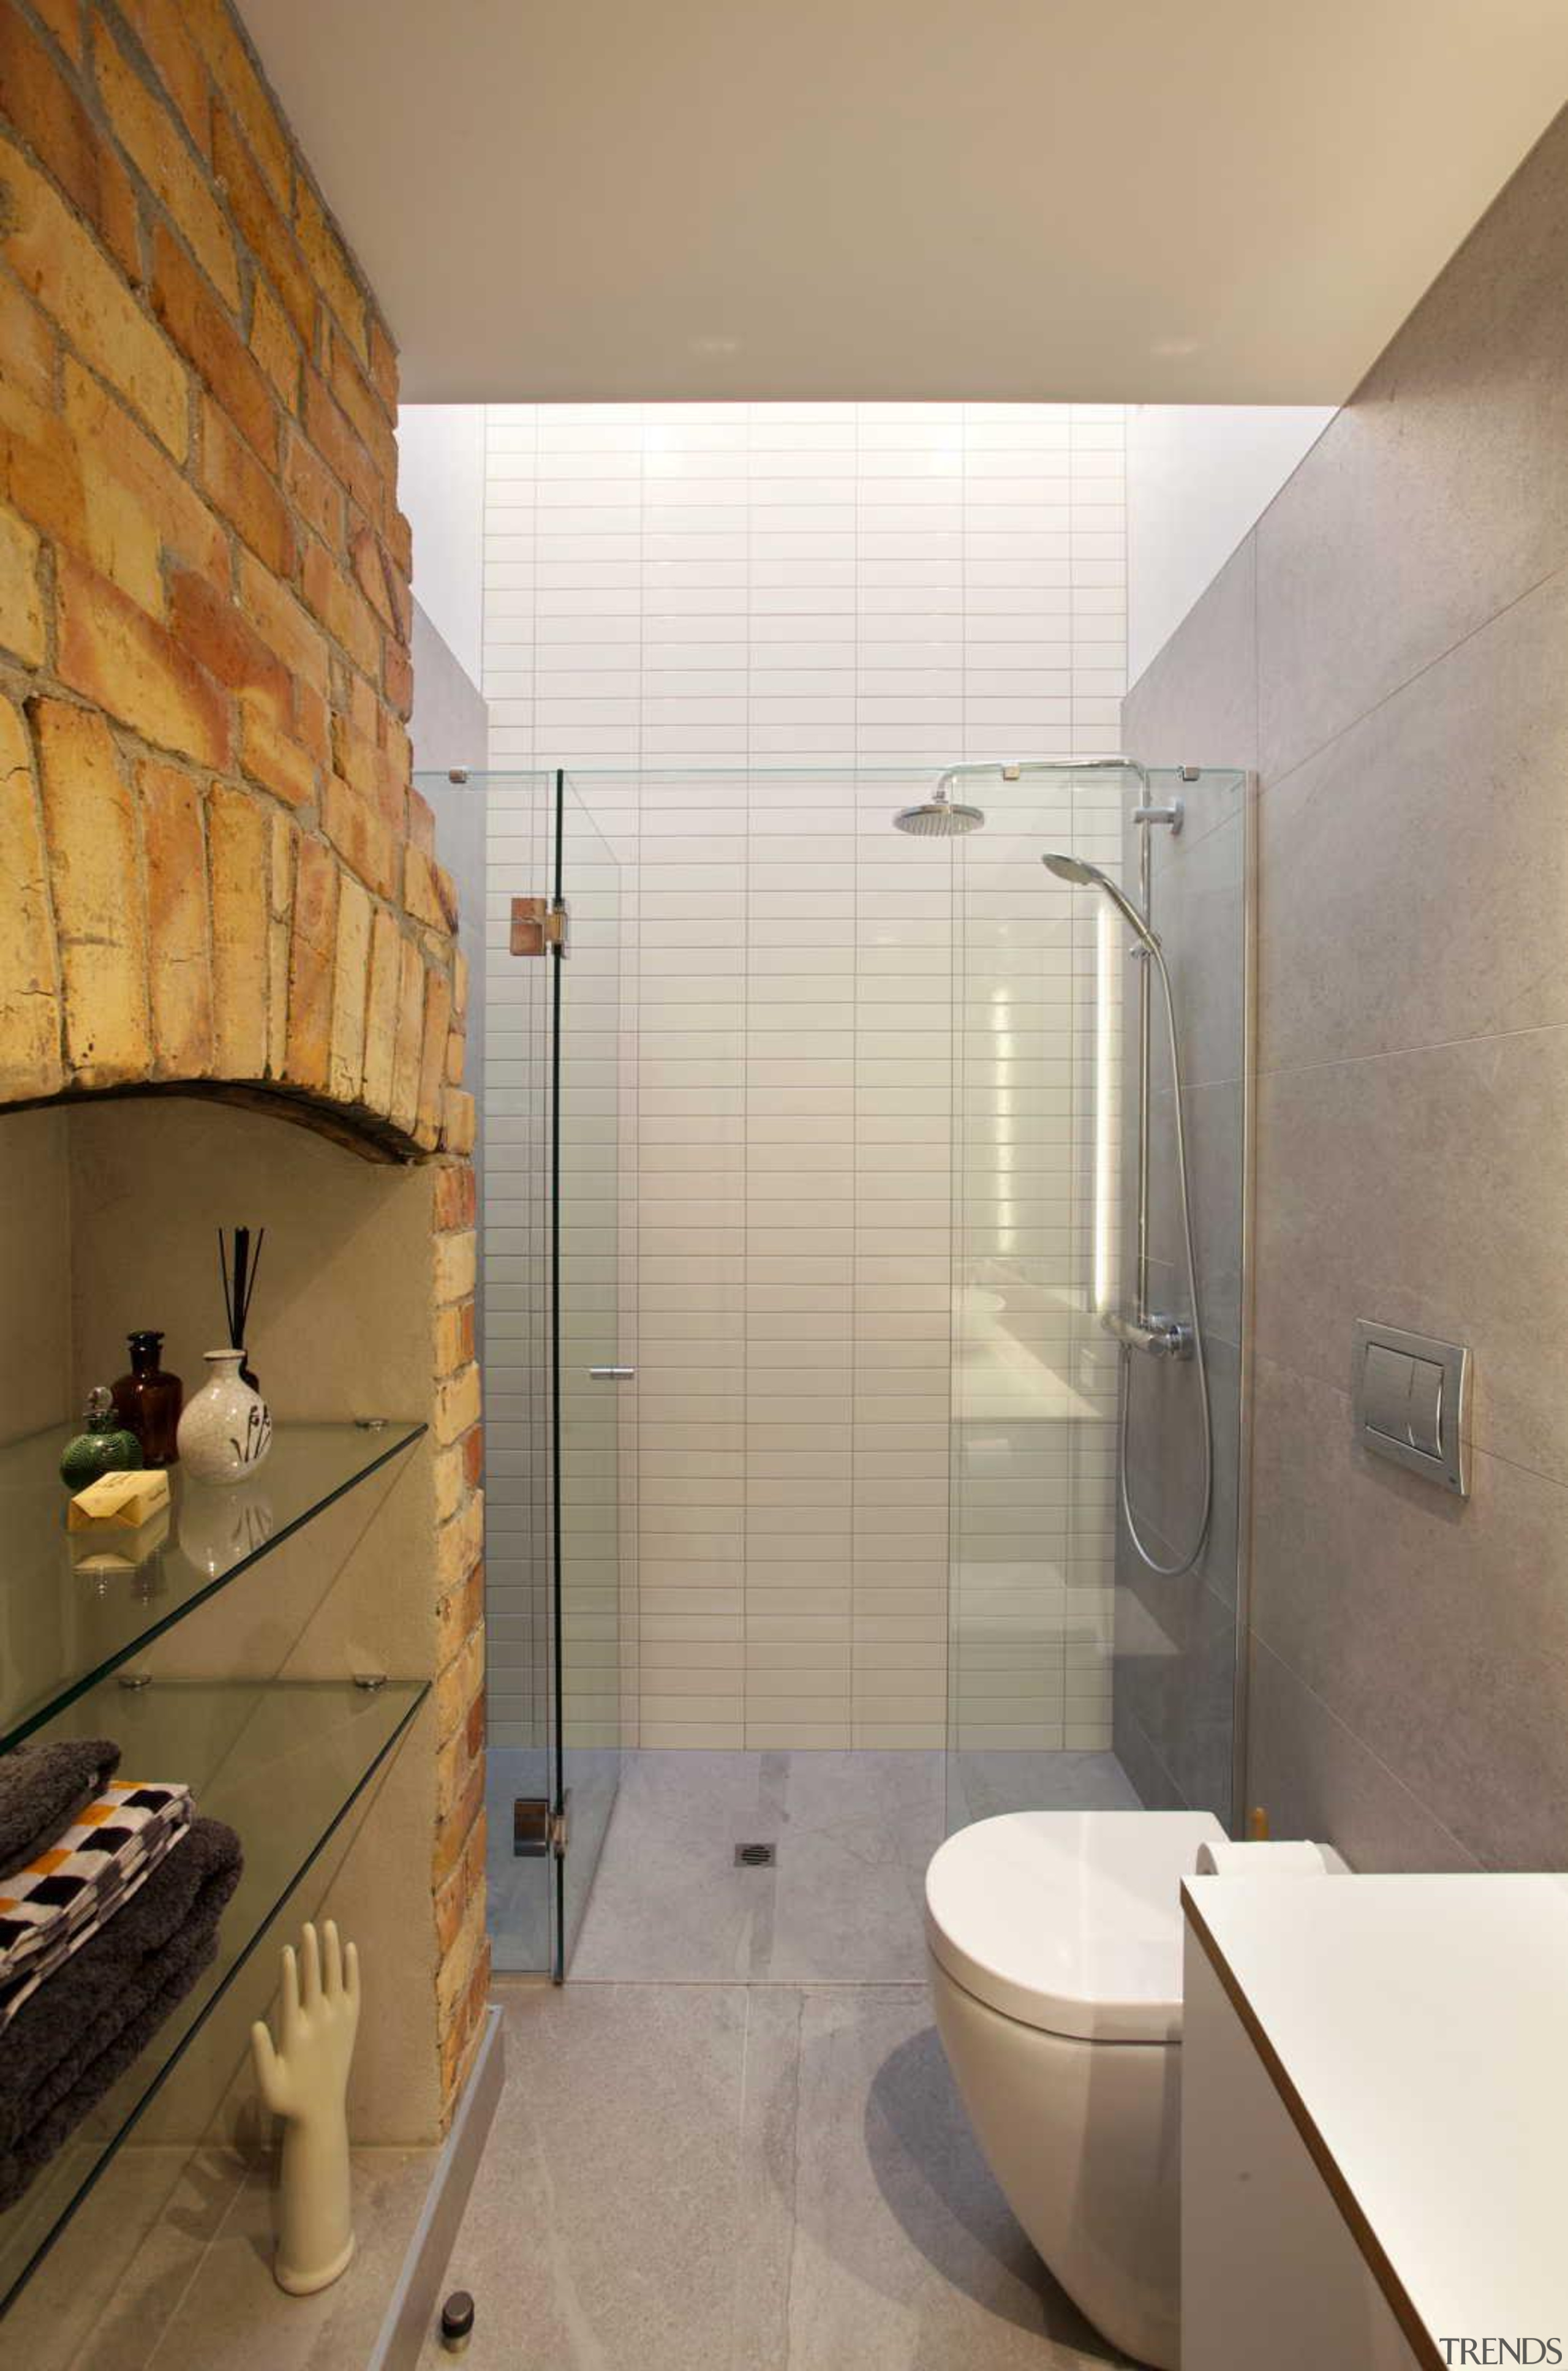 Pairing rustic with modern in the new bathroom. architecture, bathroom, floor, interior design, plumbing fixture, property, room, tile, wall, gray, brown